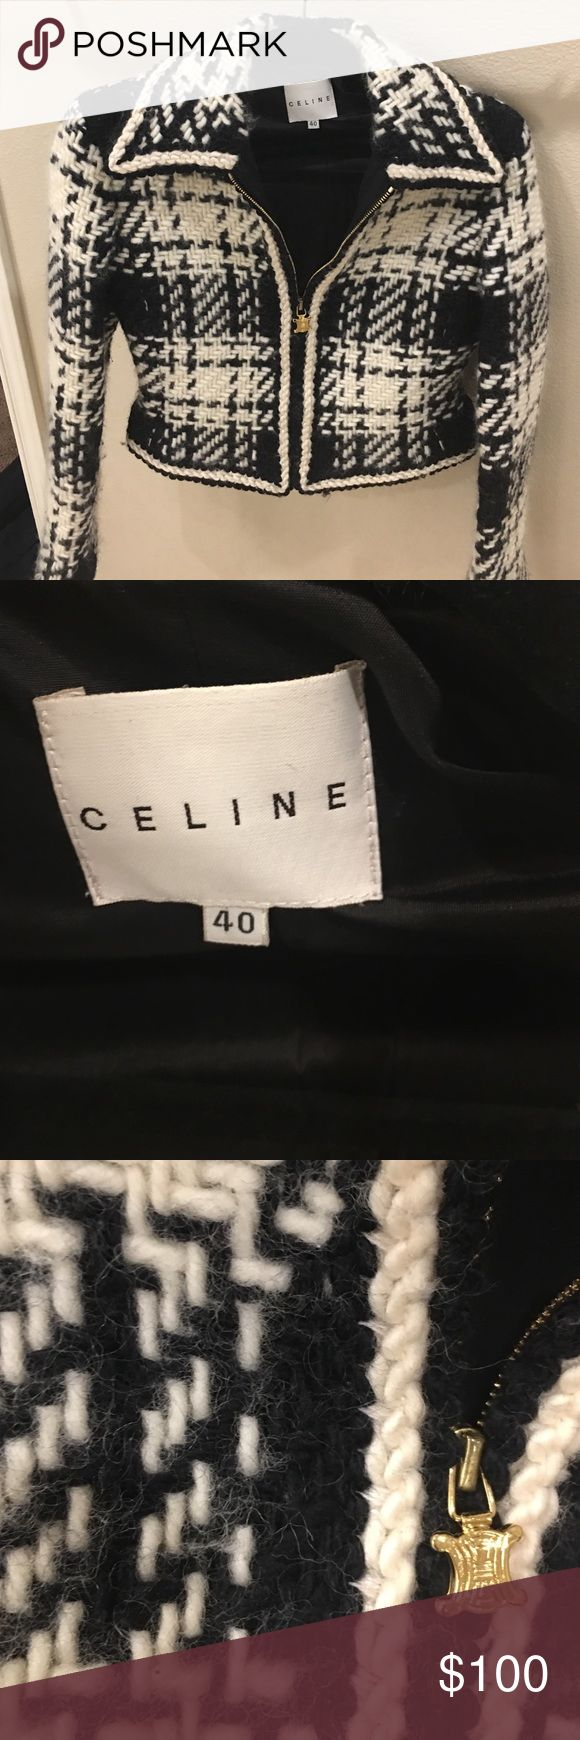 Celine blazer Super cute blazer once owned by... Bernie Madoff's wife😂 seriously, bought it at an auction! Celine Jackets & Coats Blazers